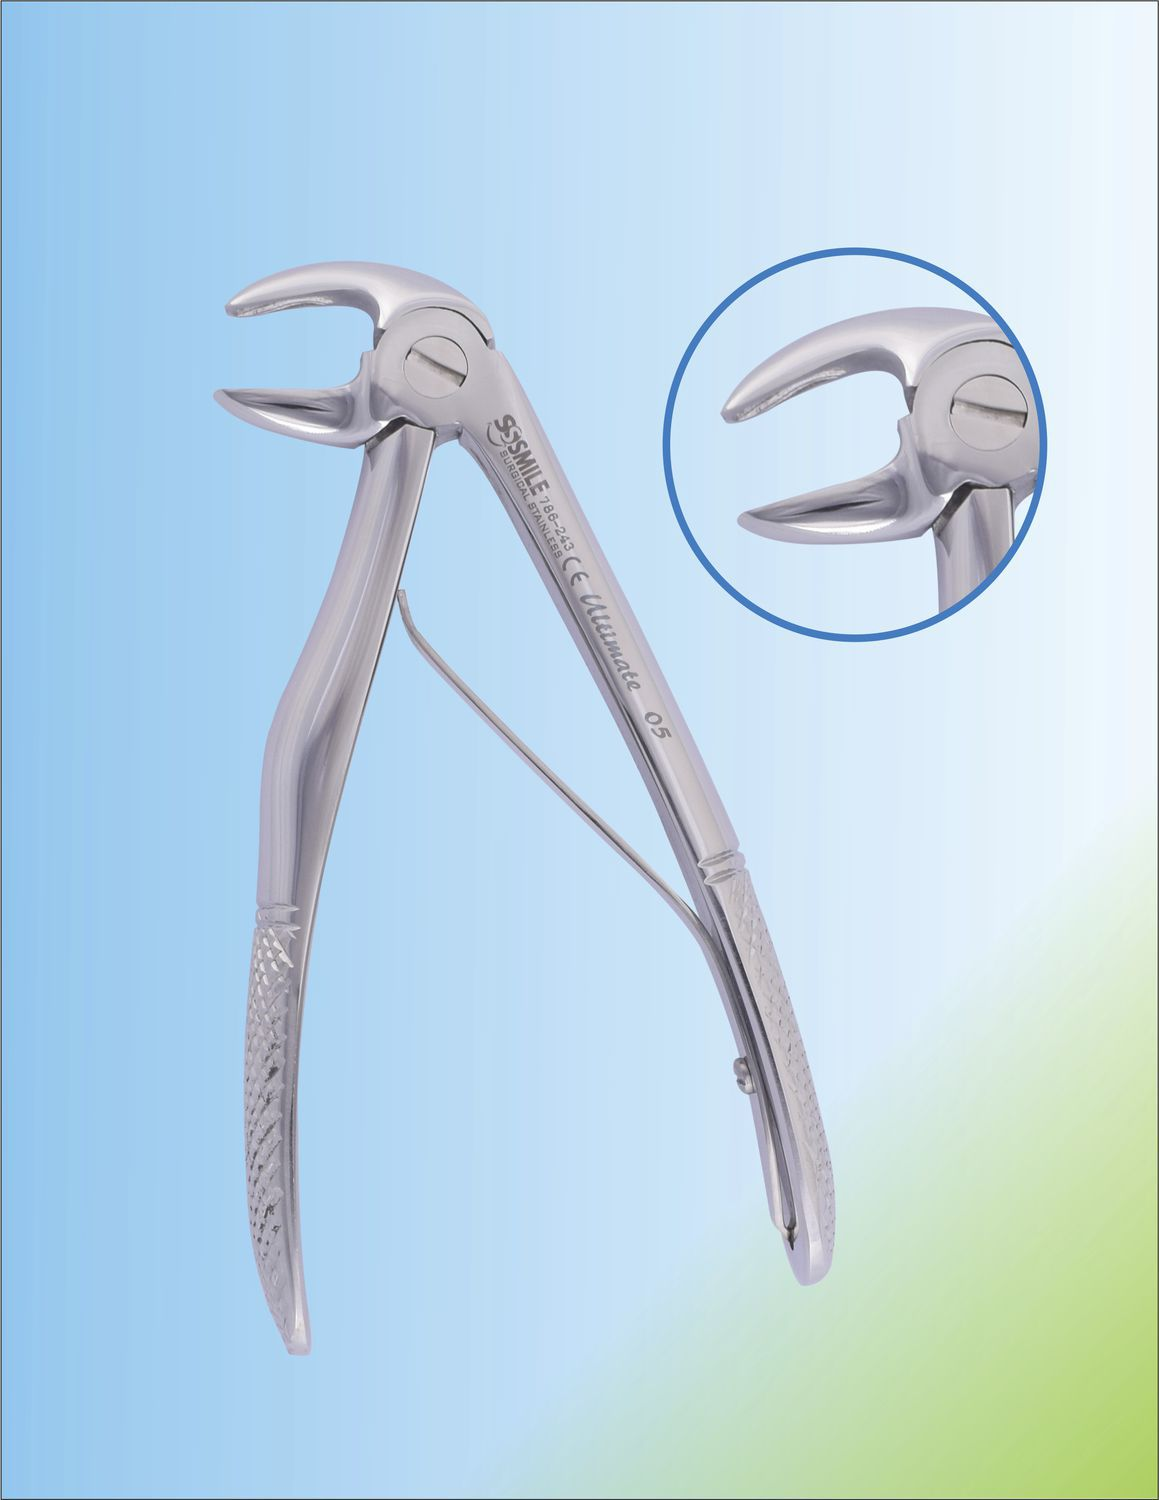 Baby Dental Extraction Forceps Ssi 786 243 Smile Surgical Ireland Limited For Lower Incisors